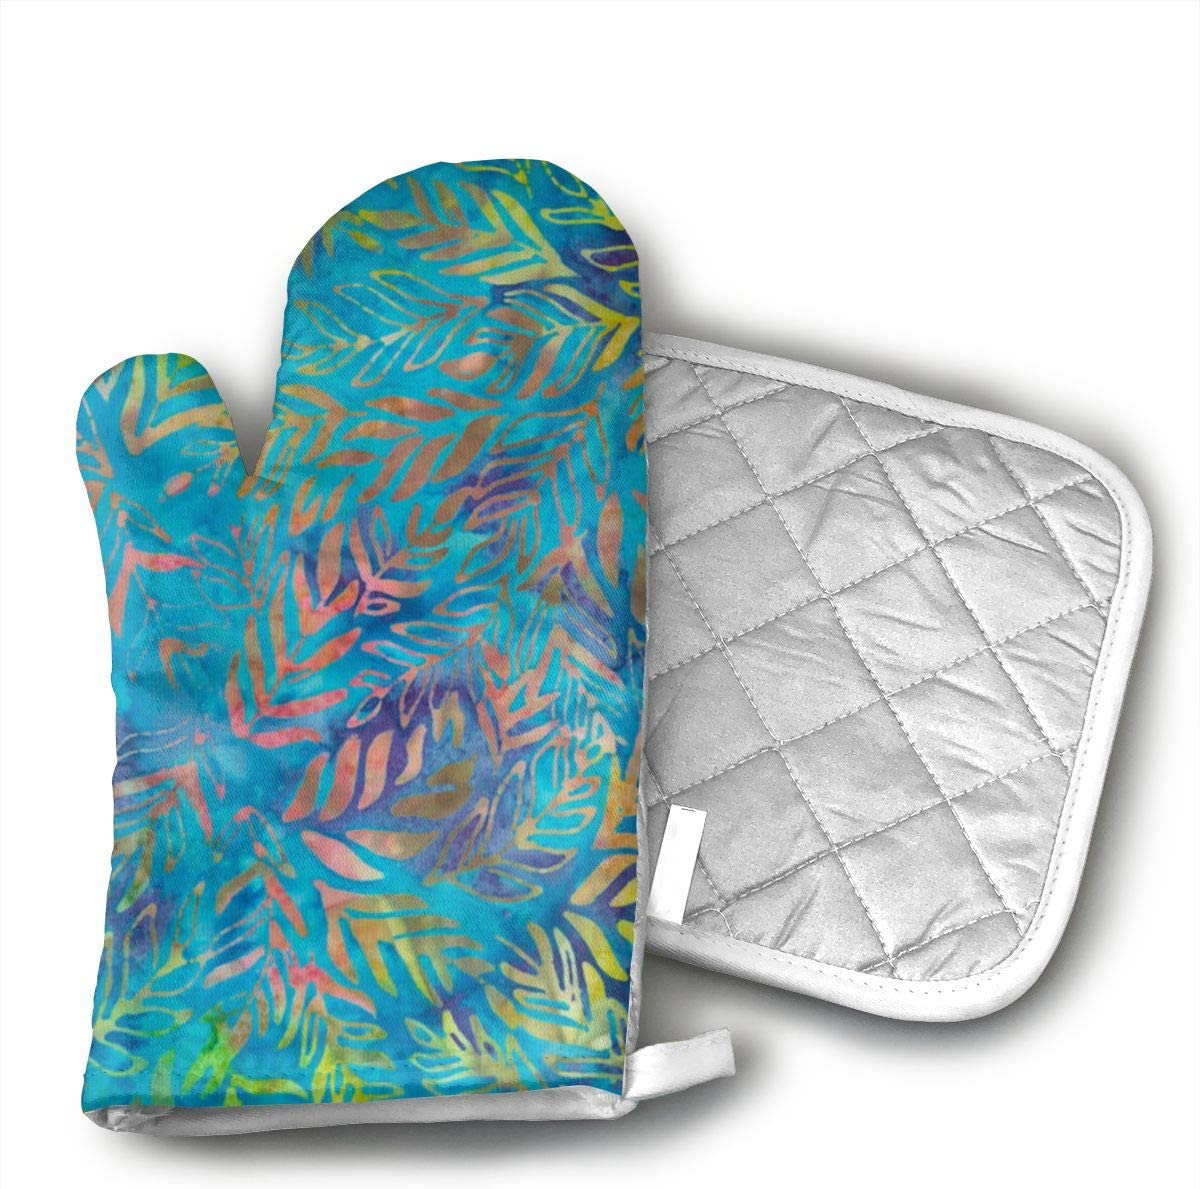 Ydsgjds Tonga Batik Aruba Outback Tropic Fabric Oven Mitts and BBQ Gloves Pot Holders,Kitchen Gloves for Grilling Machine Baking Grilling with Non-Slip